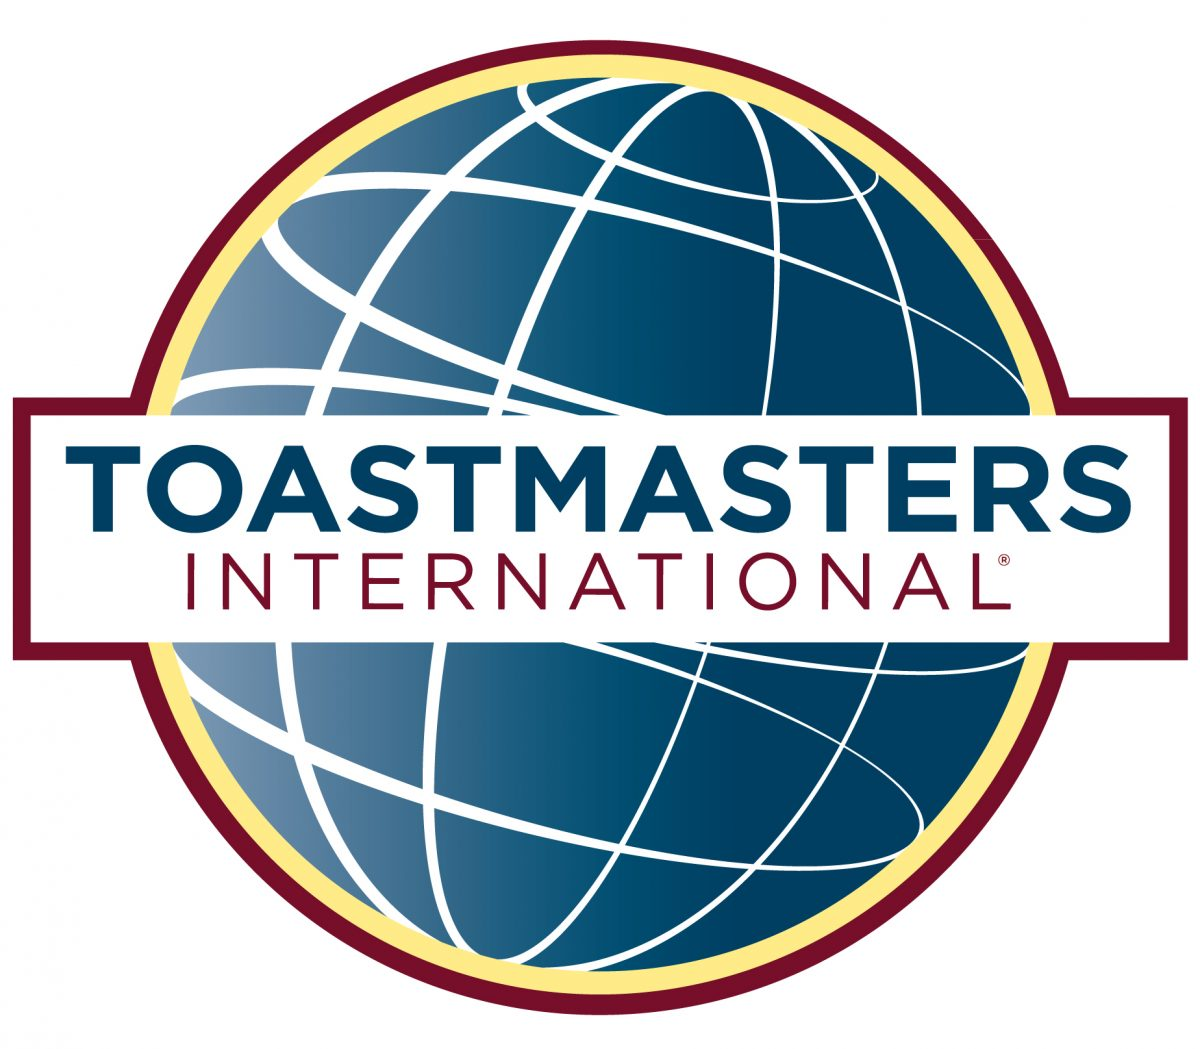 NEW!!! Toastmasters International is bringing their Youth Leadership Development Program to FMM this Spring!